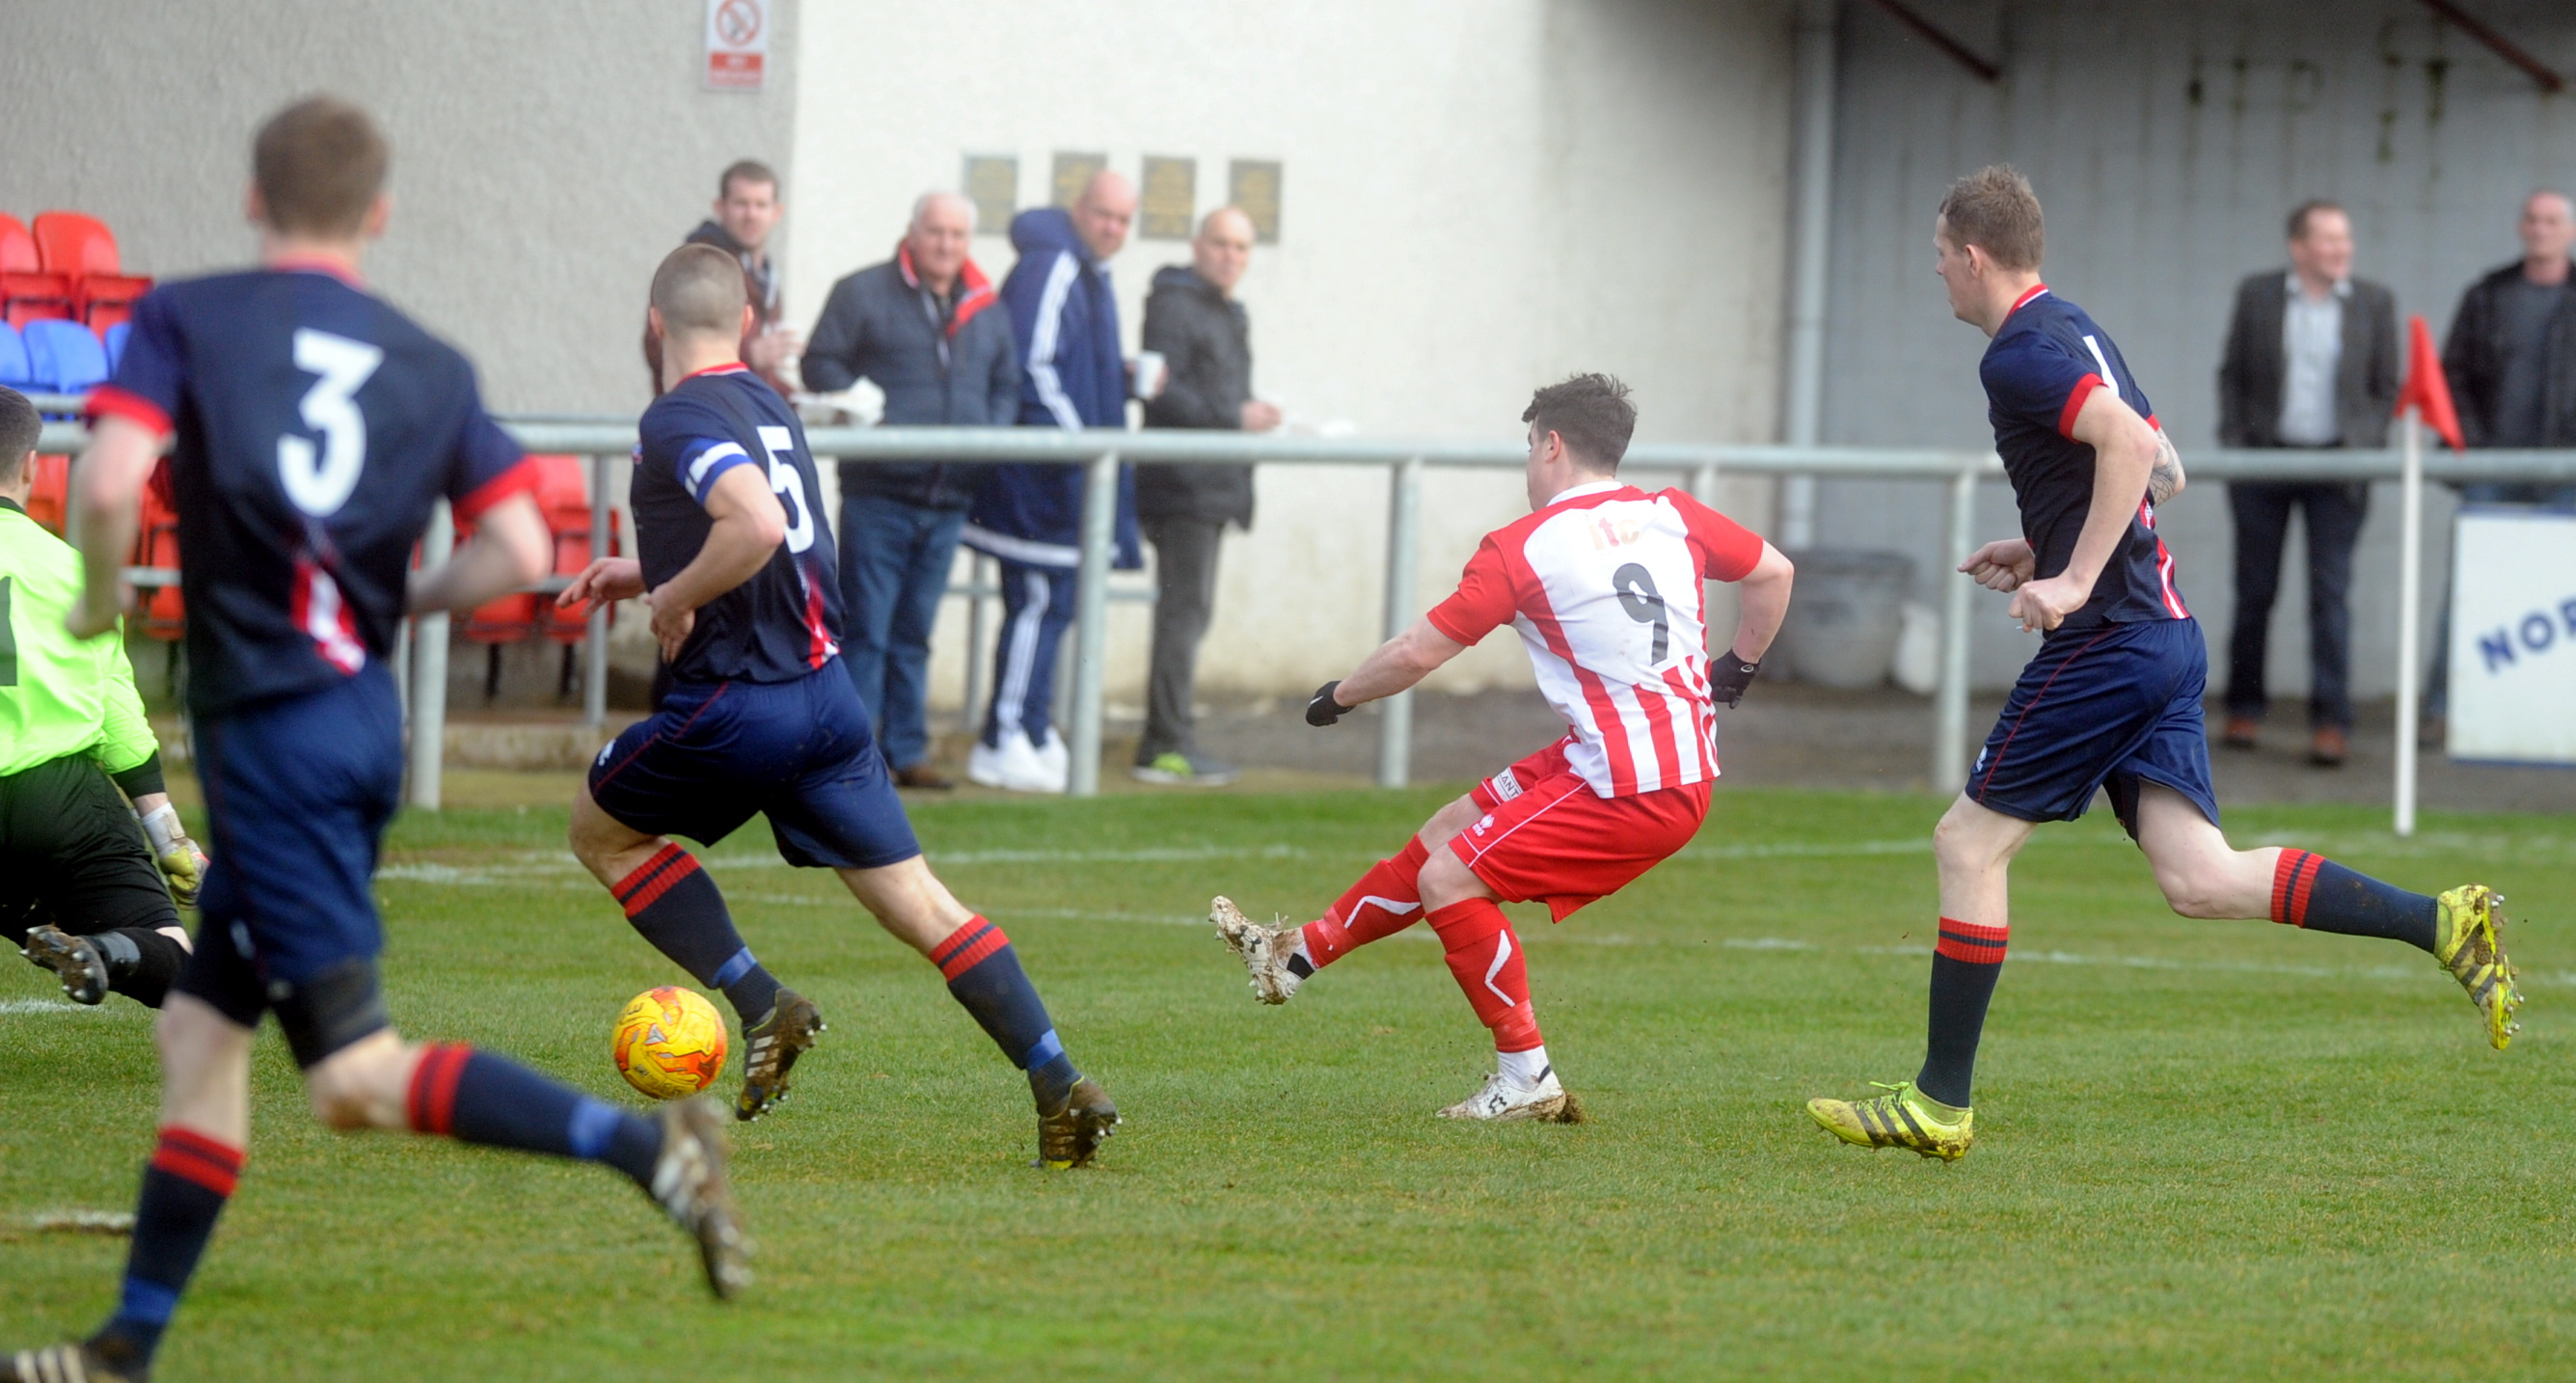 Formartine's Conor Gethins shoots in the semi-final.